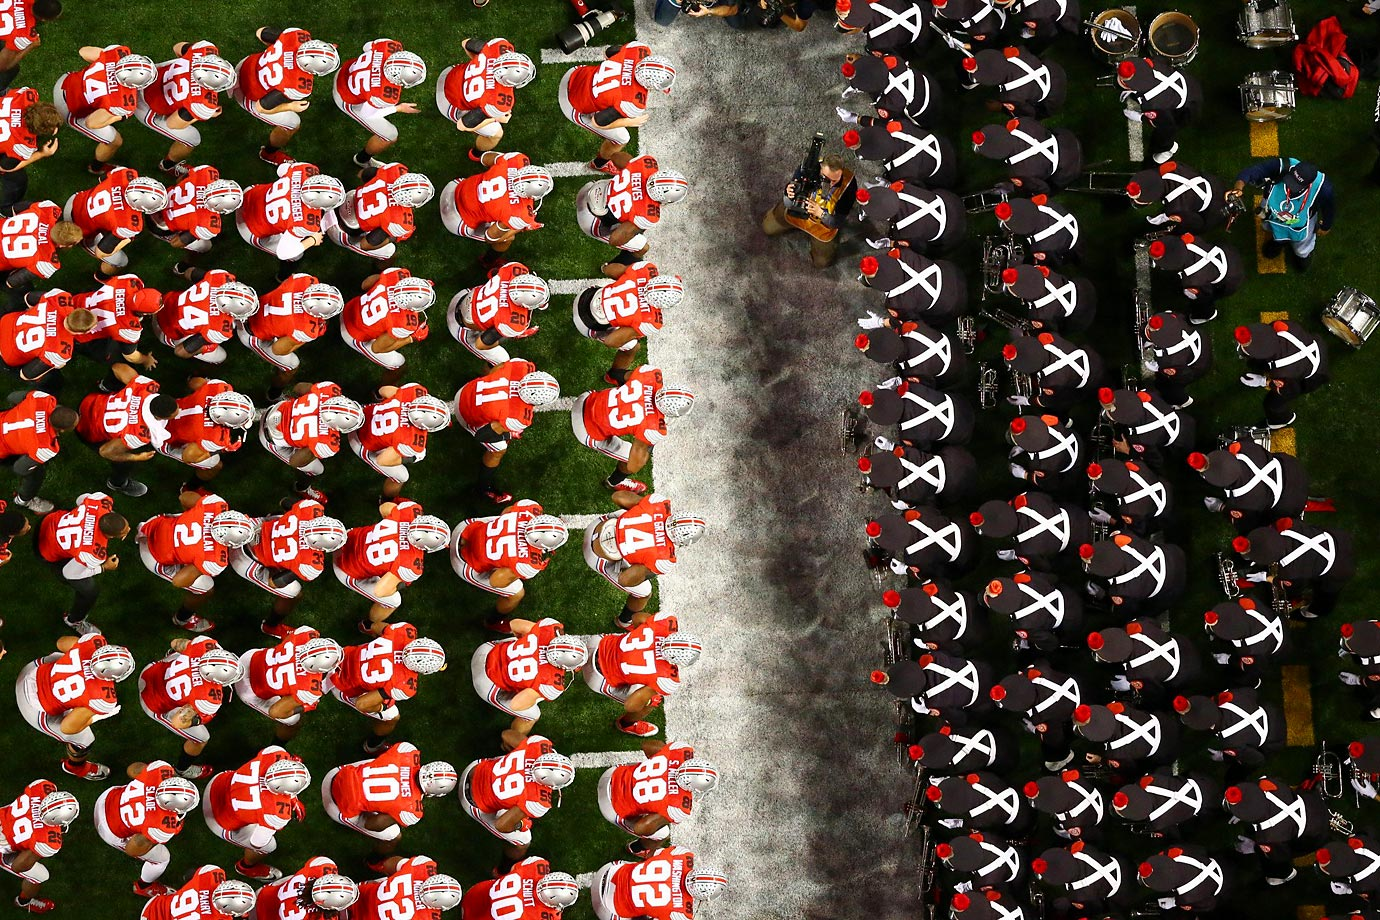 After tripping on the cheerleaders on the way out to the field, Ohio State mistakenly lined up against the wrong squad.